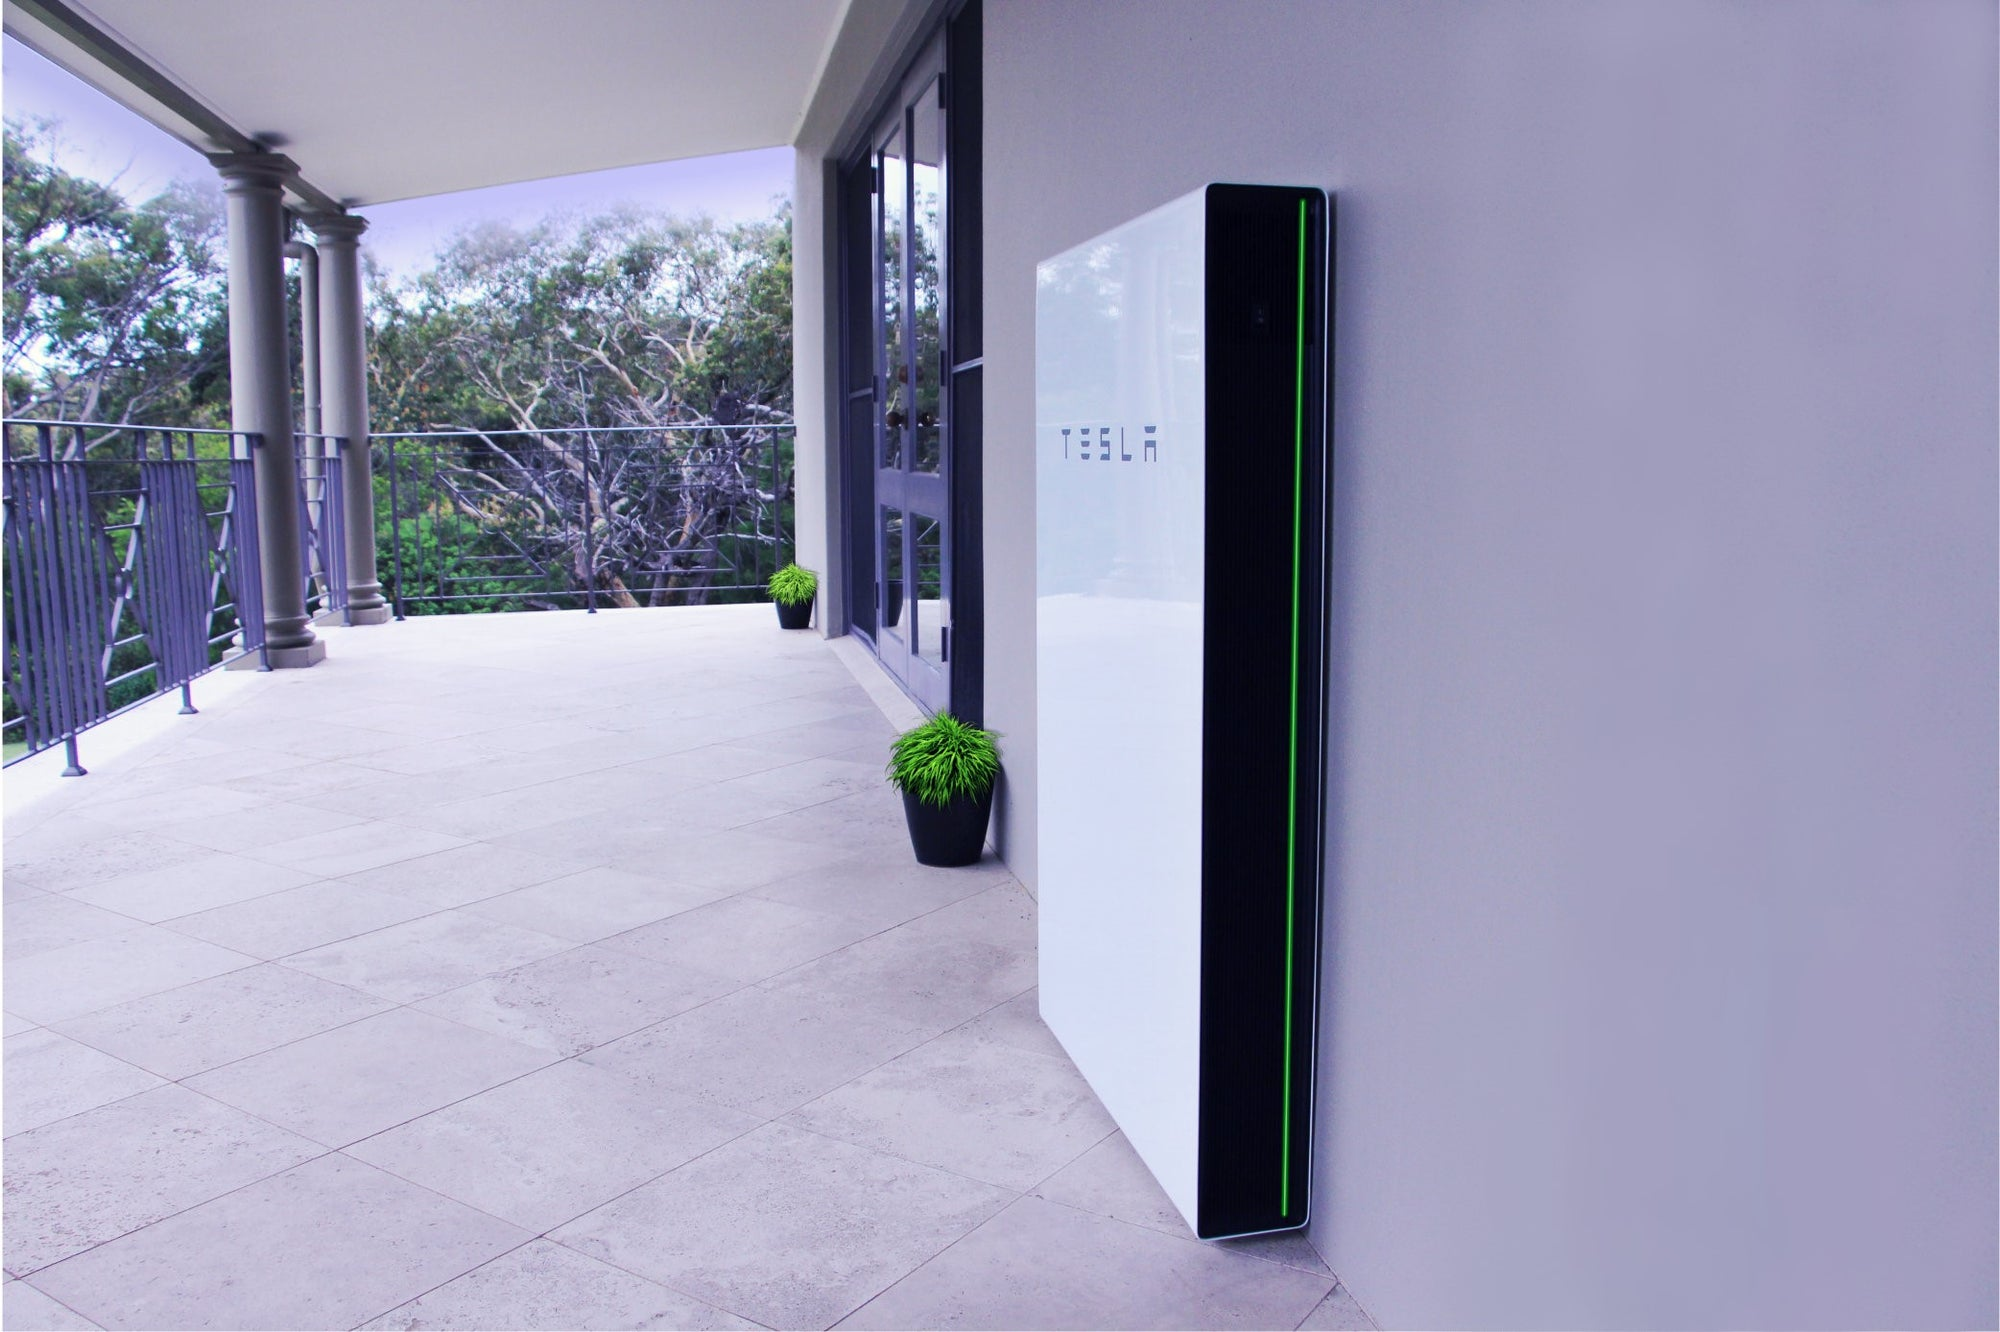 Tesla Achieved Another Milestone Of Installed the 100,000th Powerwall